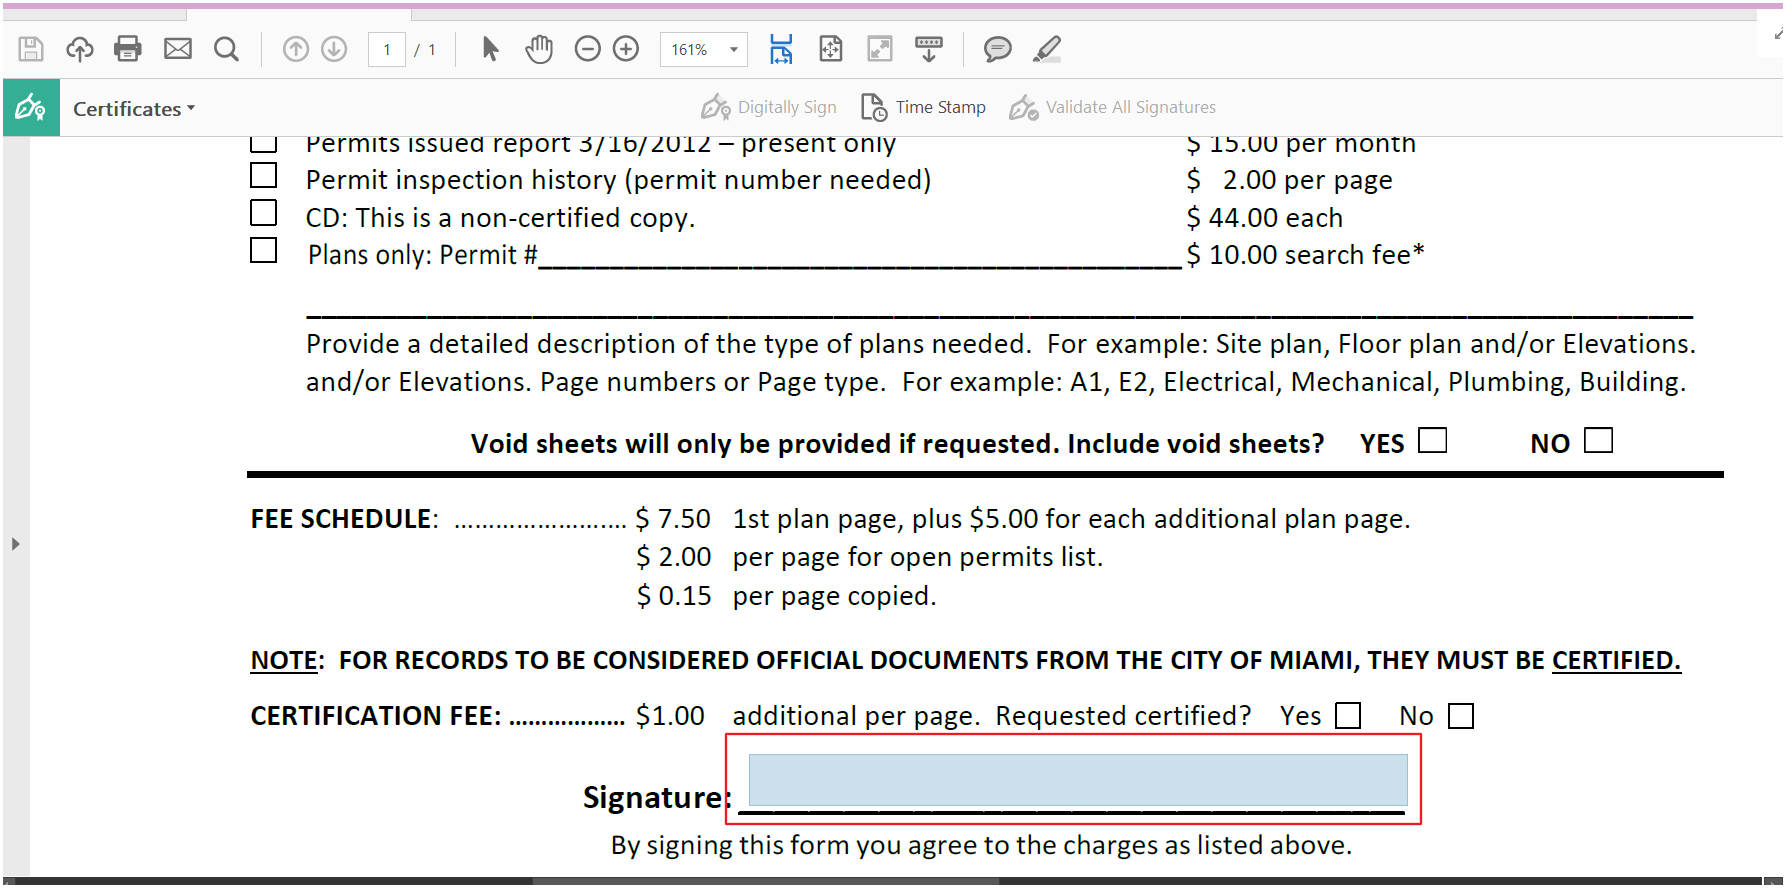 image3 - City Of Miami Gardens Building Department Permit Search